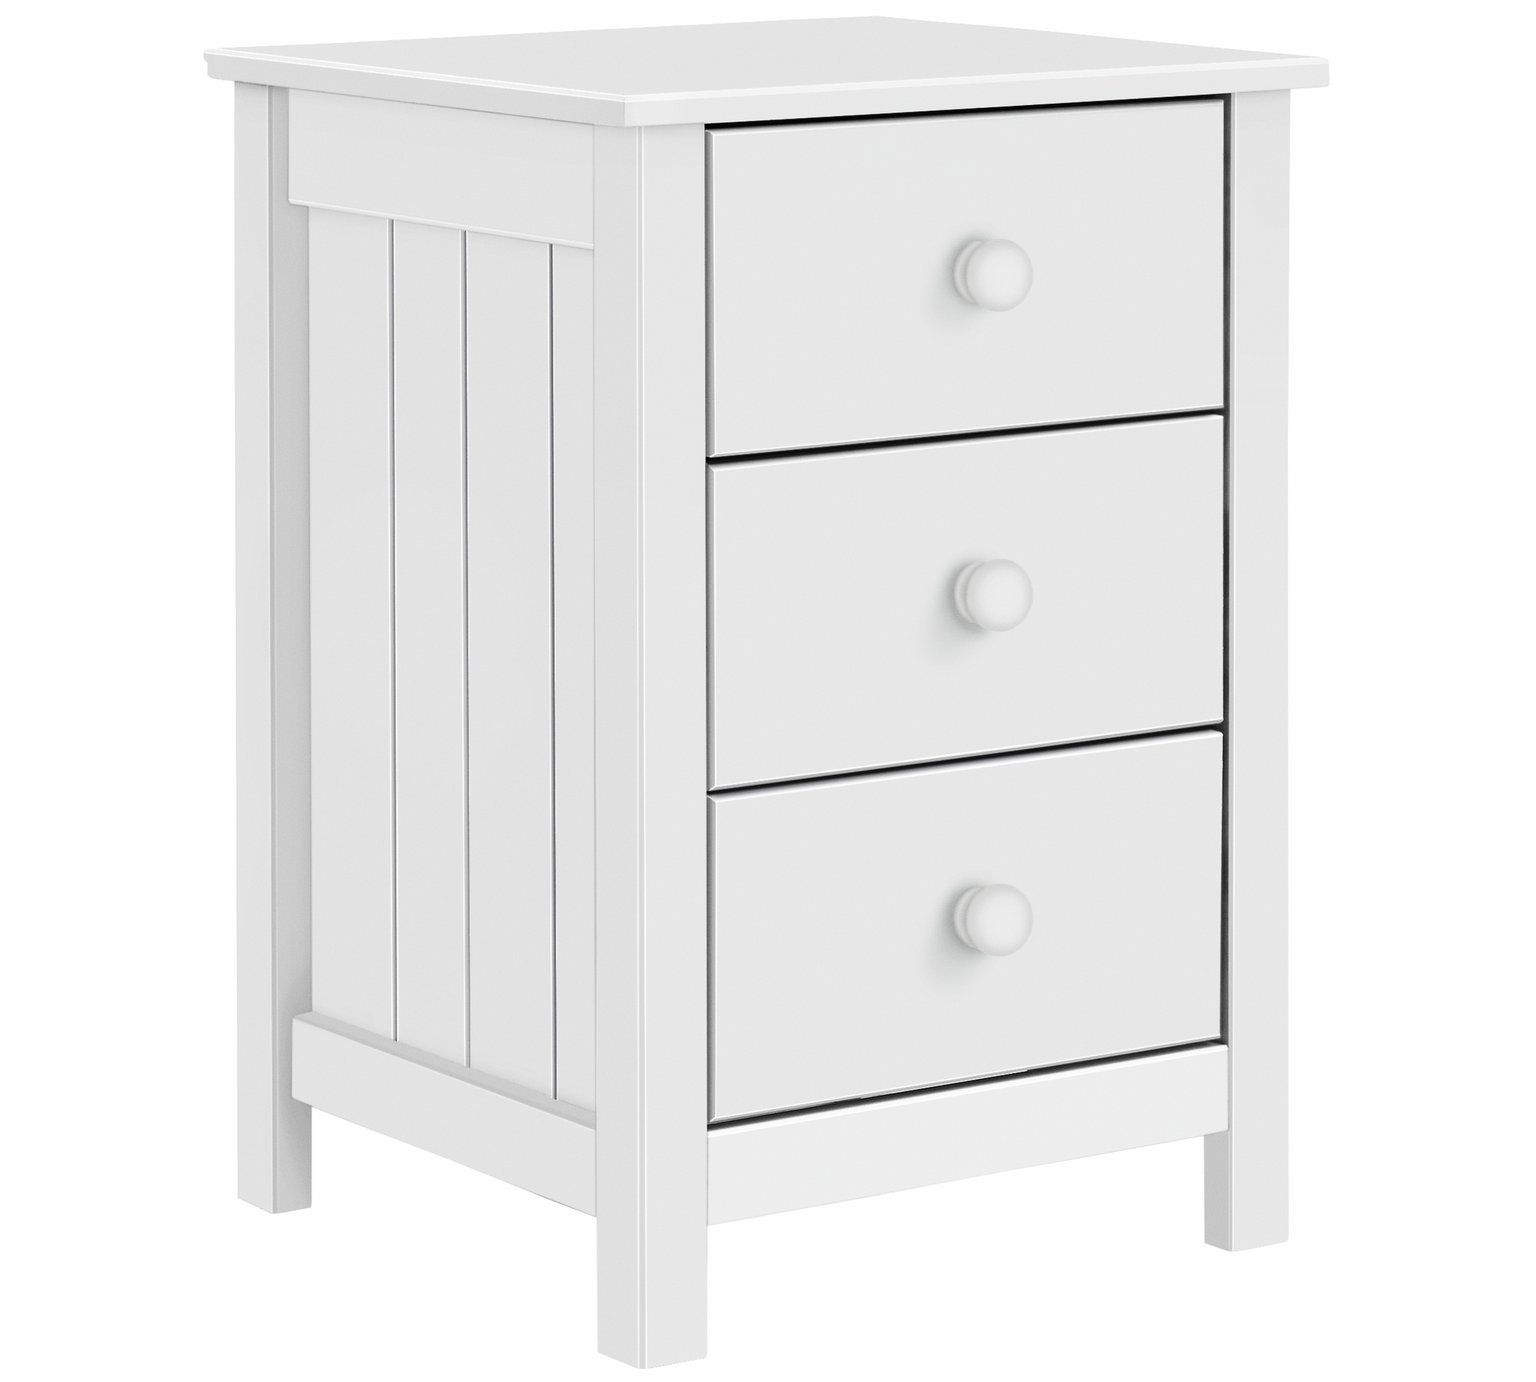 Argos Bedroom Furniture Stunning Buy Home New Scandinavia 3 Drawer Bedside Chest  White At Argos Design Inspiration